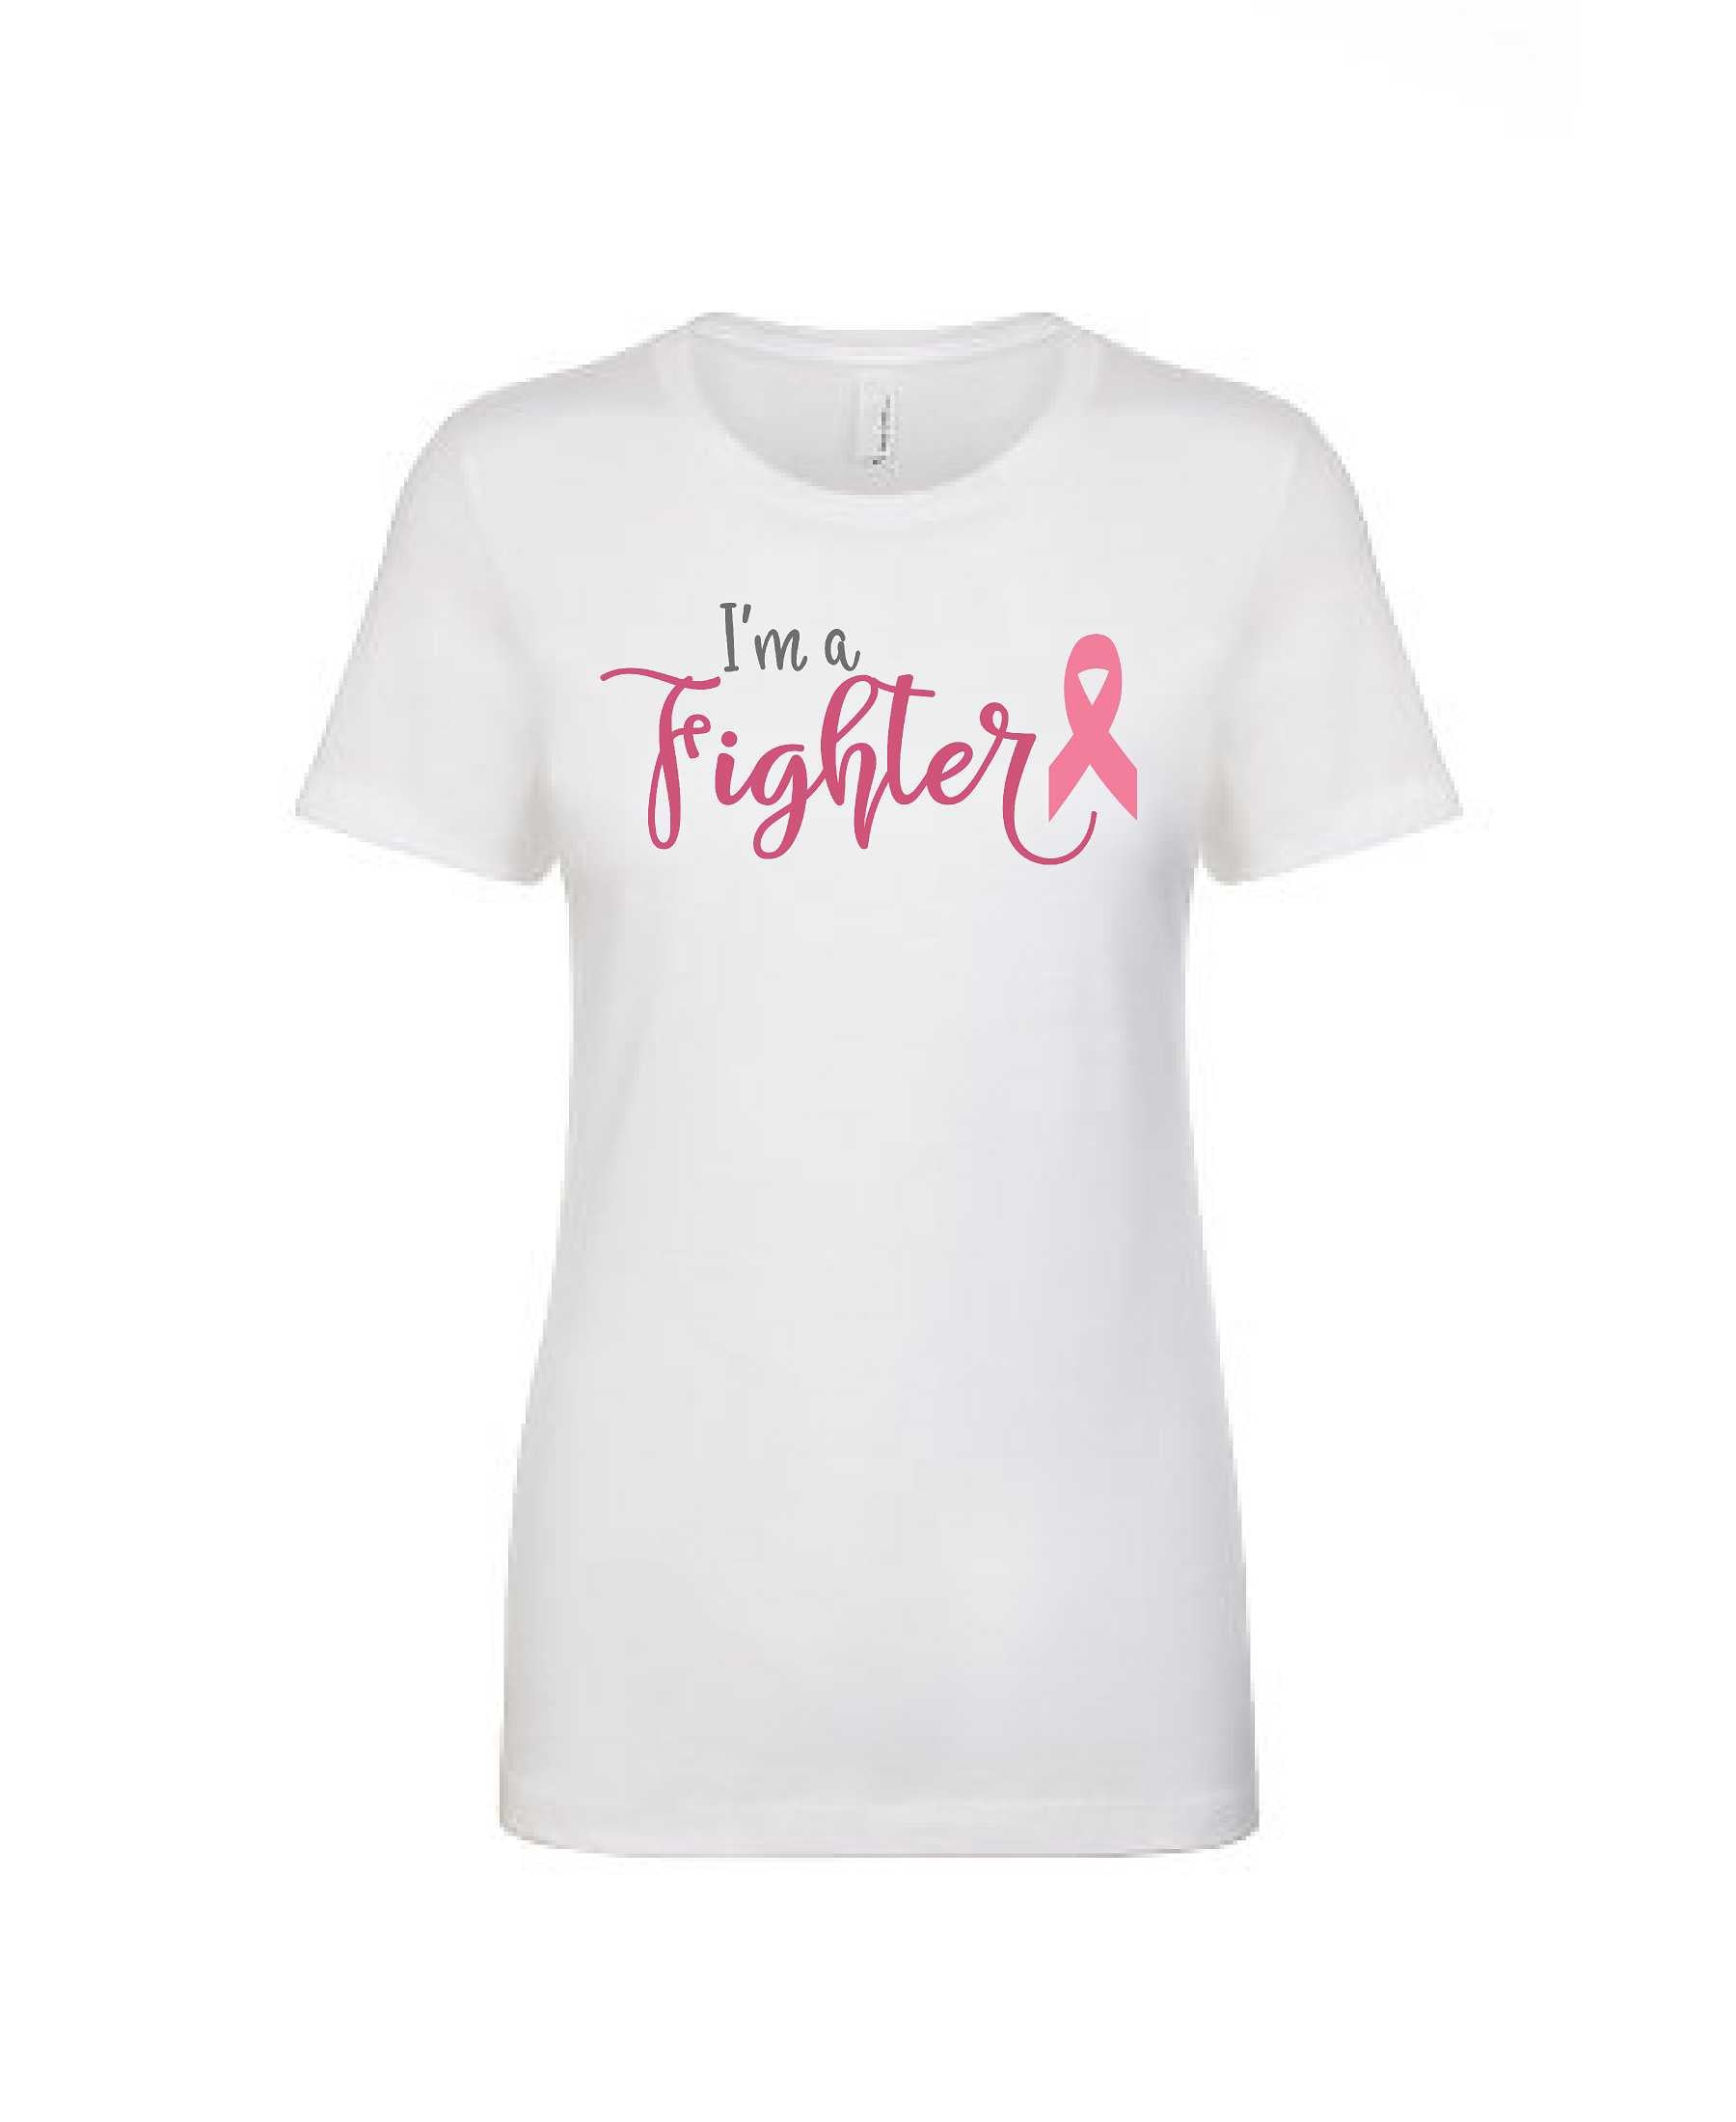 I'm a Fighter Tee - Women's Boyfriend Tee